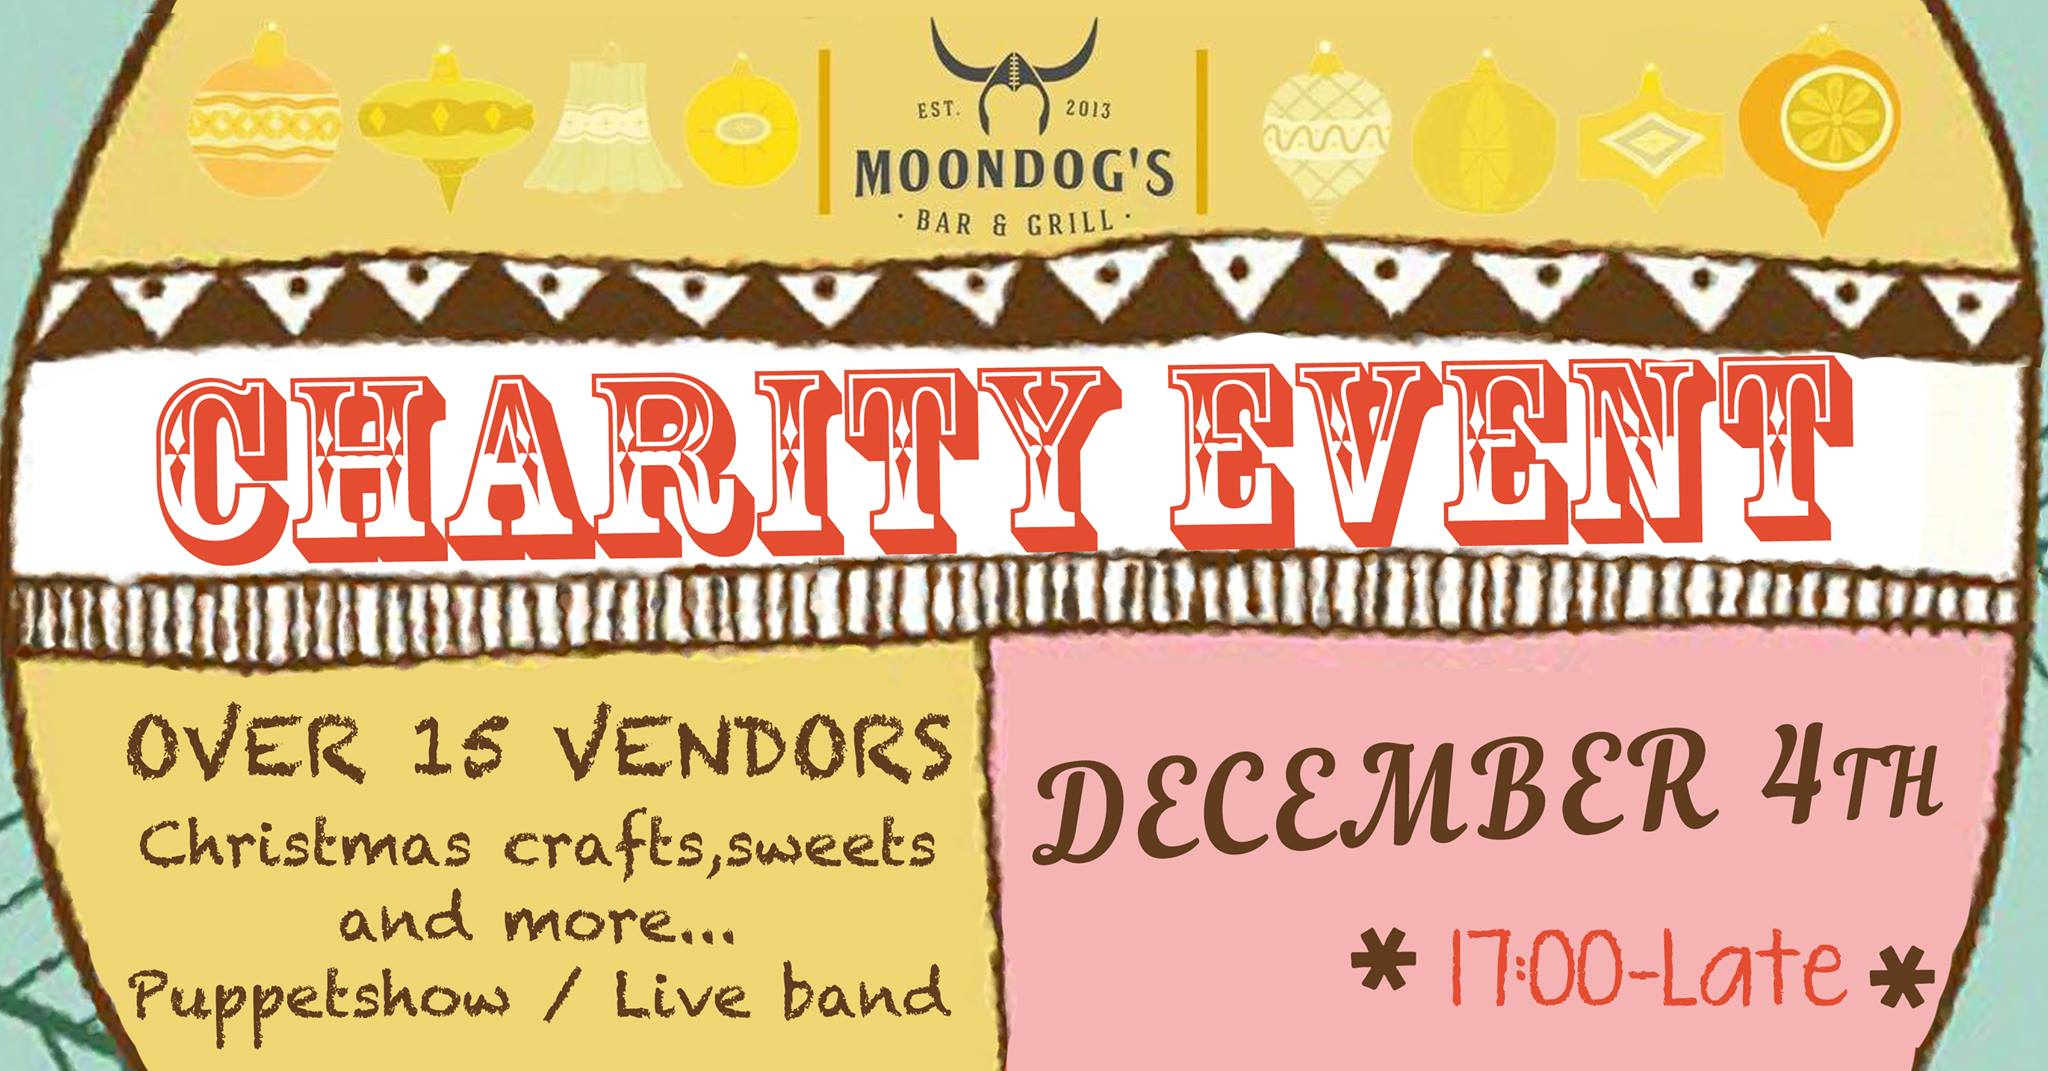 A very Merry Charity Party at Moondog's - 4th edition